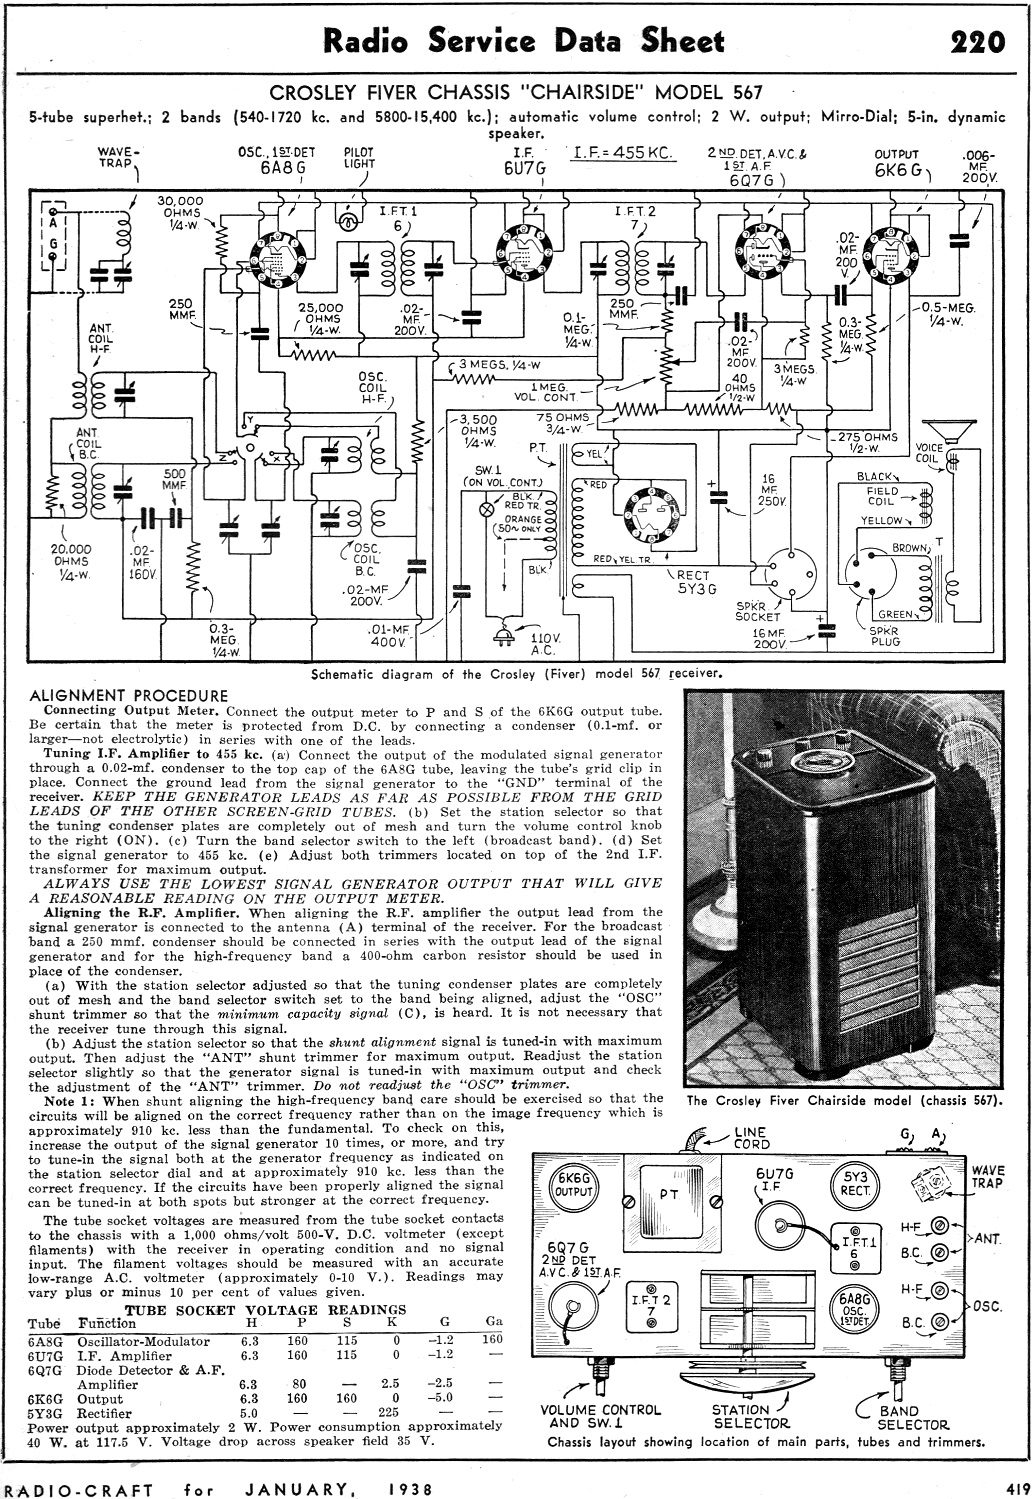 Crosley Fiver Chassis Chairside Model 567 Radio Service Data Sheet. Crosley Fiver Chassis Chairside Model 567 Radio Service Data Sheet. Wiring. Zenith Tube Radio Schematics 1938 At Scoala.co